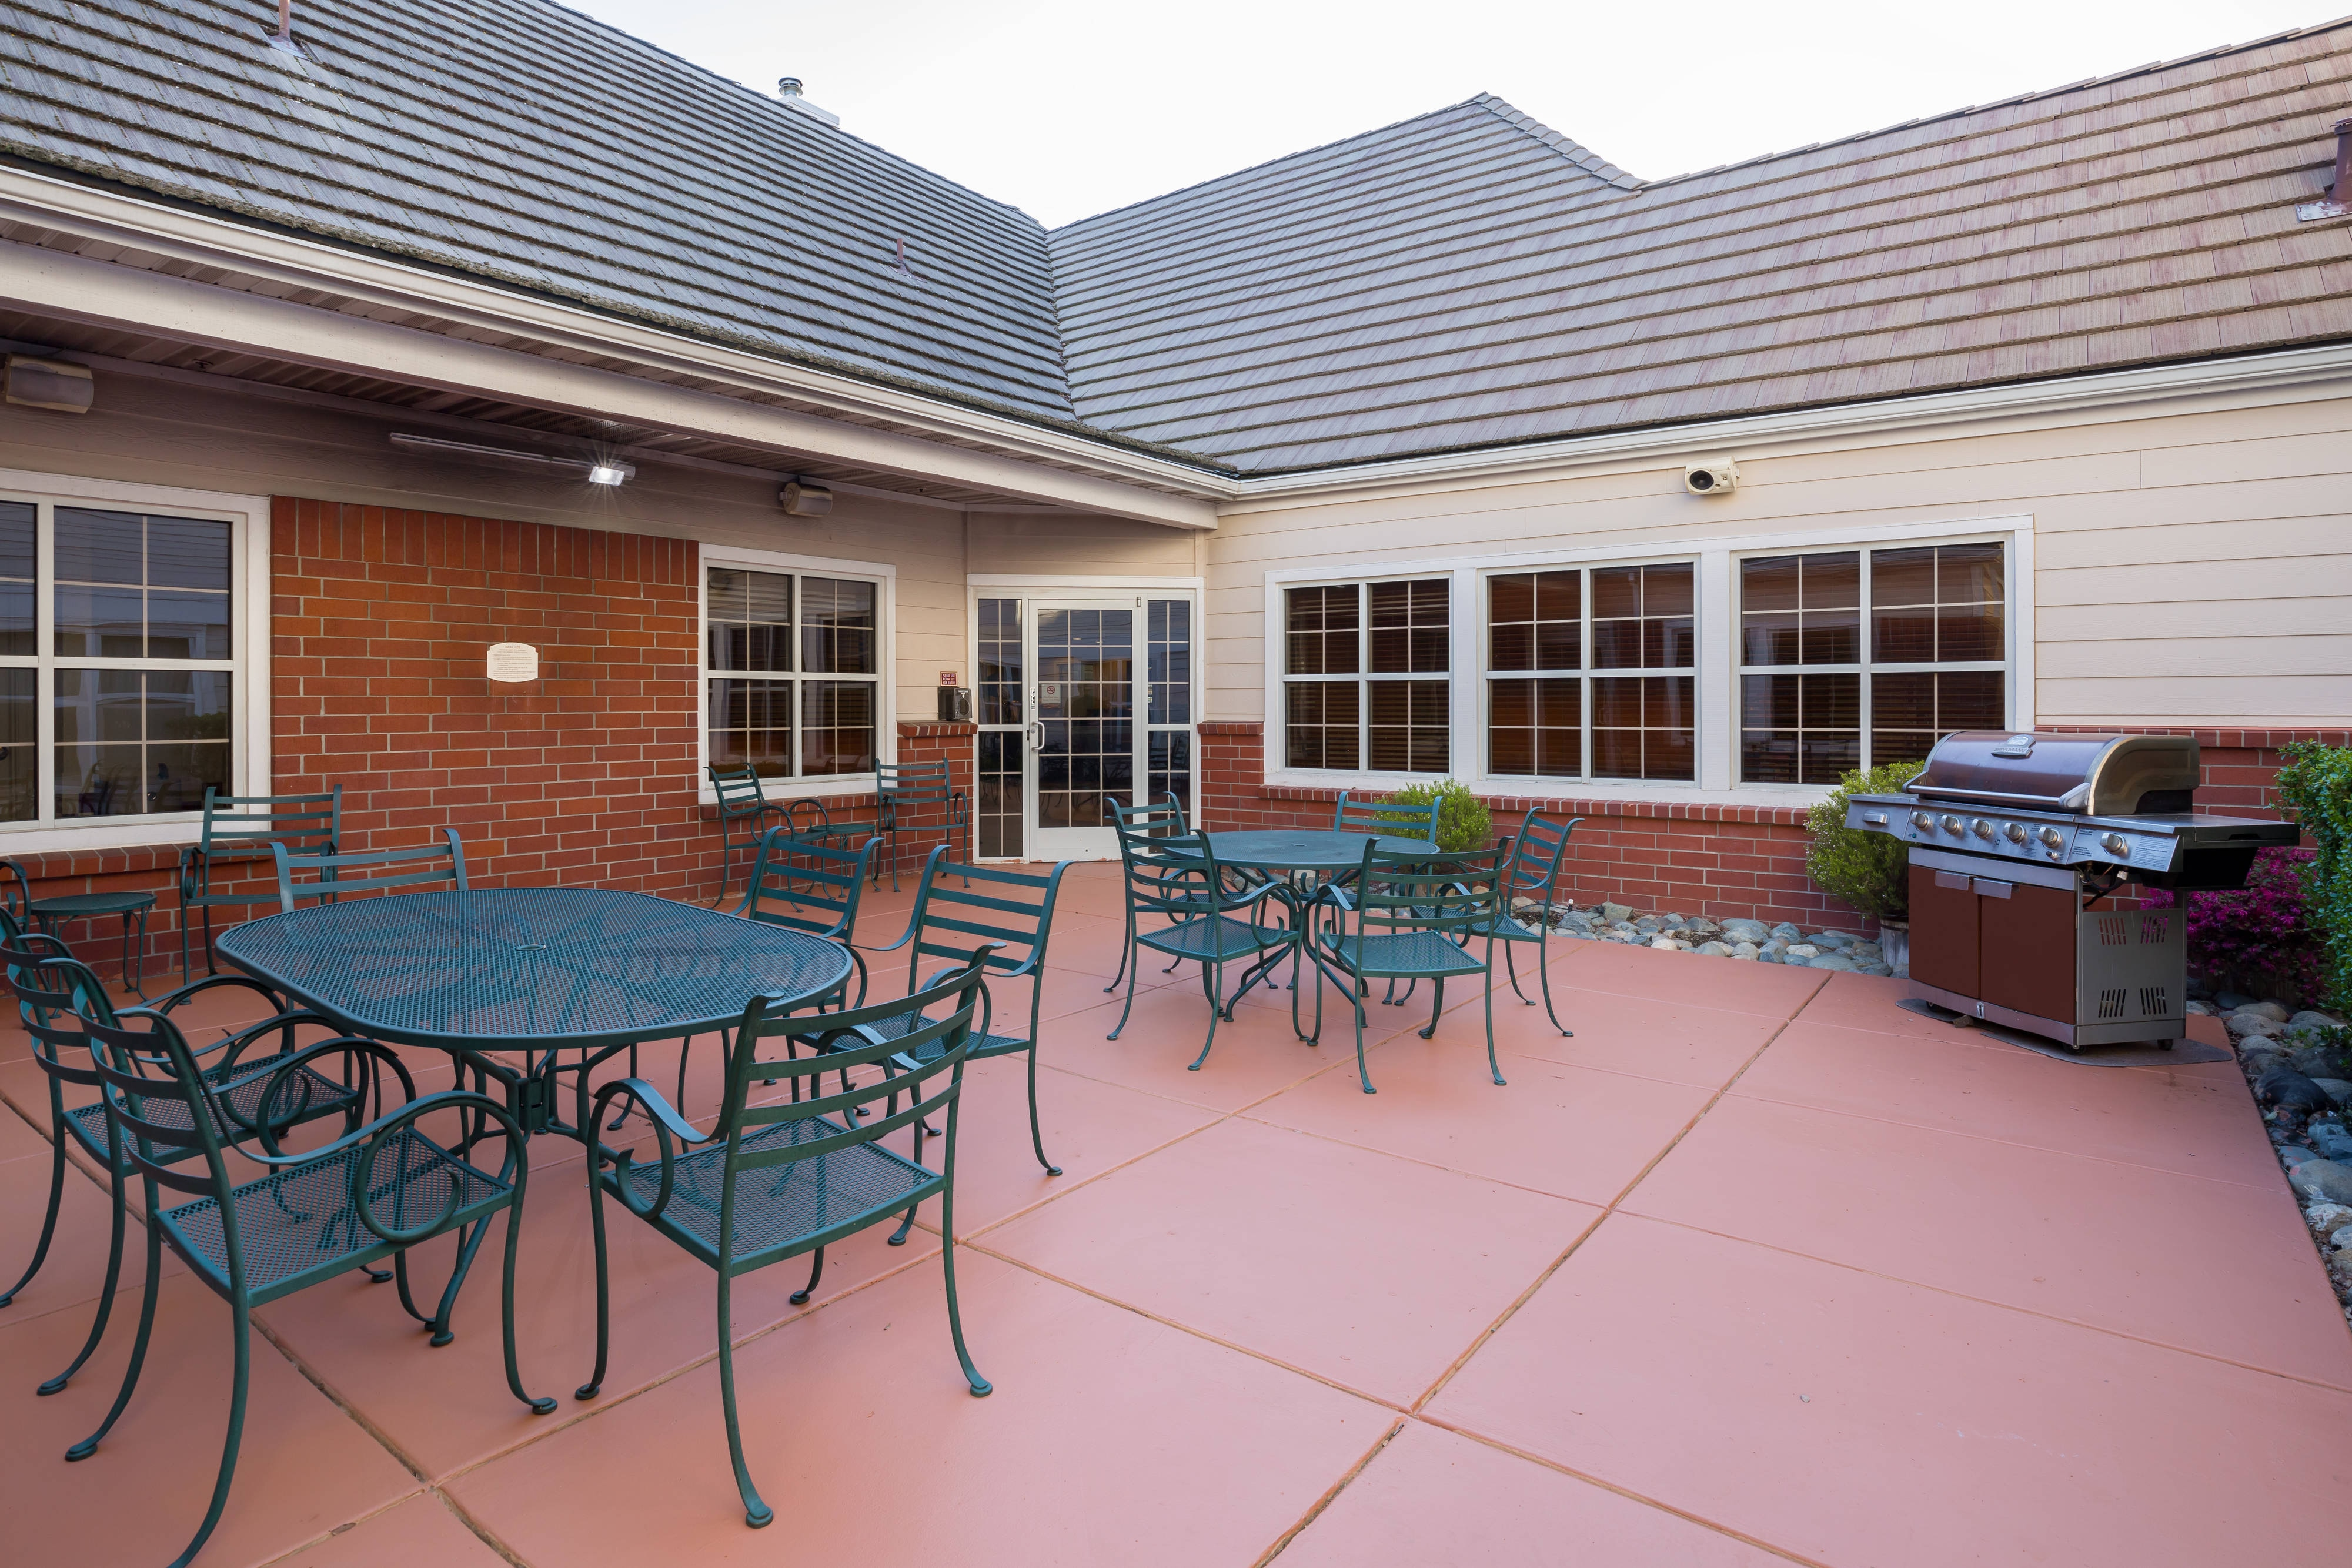 Roseville California Hotel Outdoor Patio